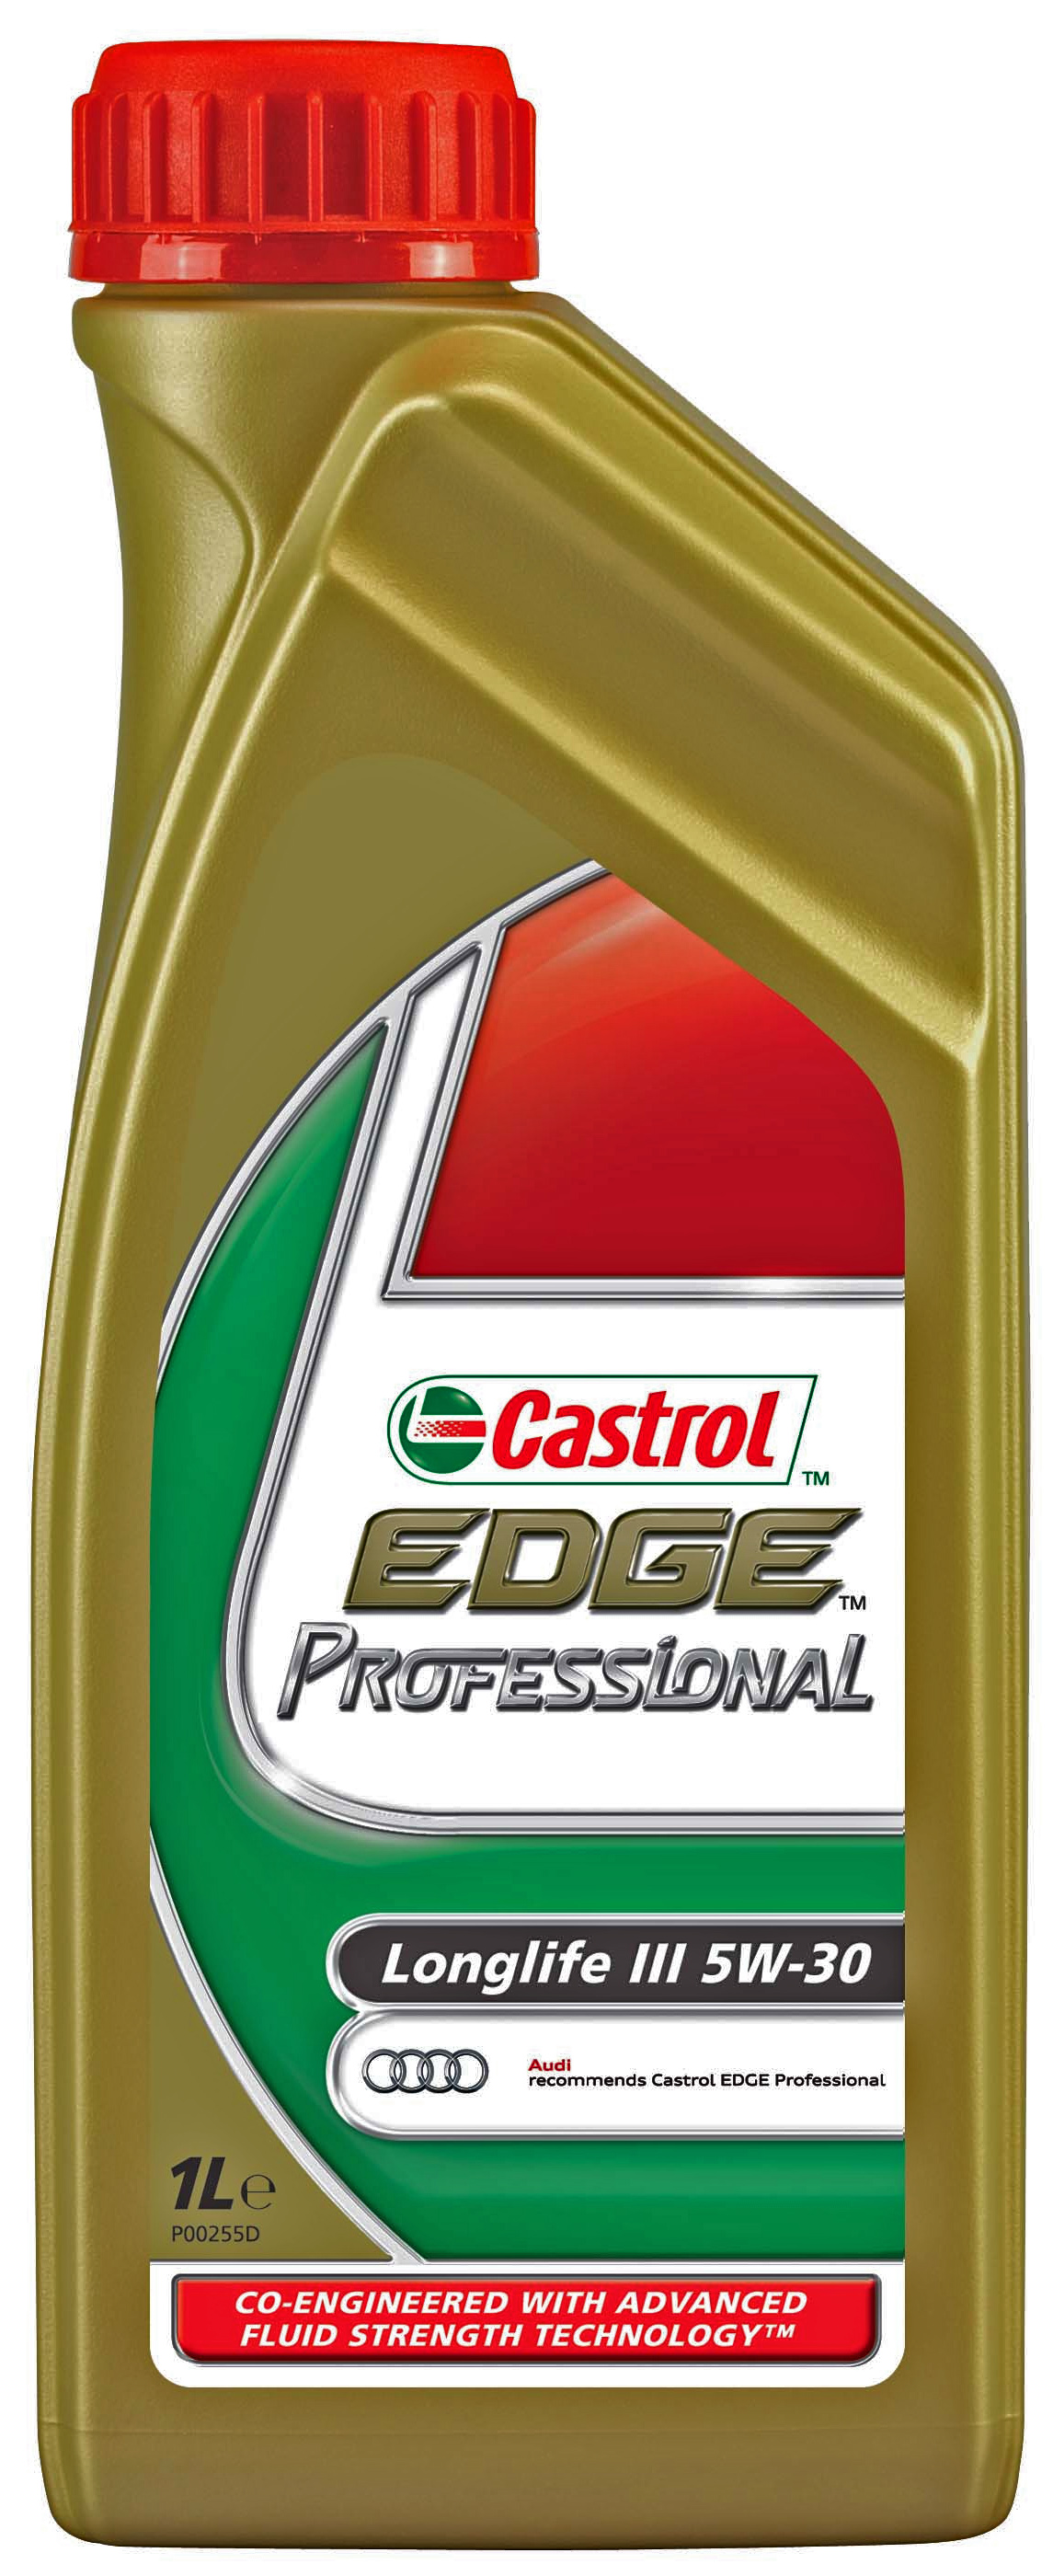 castrol edge professional longlife iii 5w 30 1. Black Bedroom Furniture Sets. Home Design Ideas